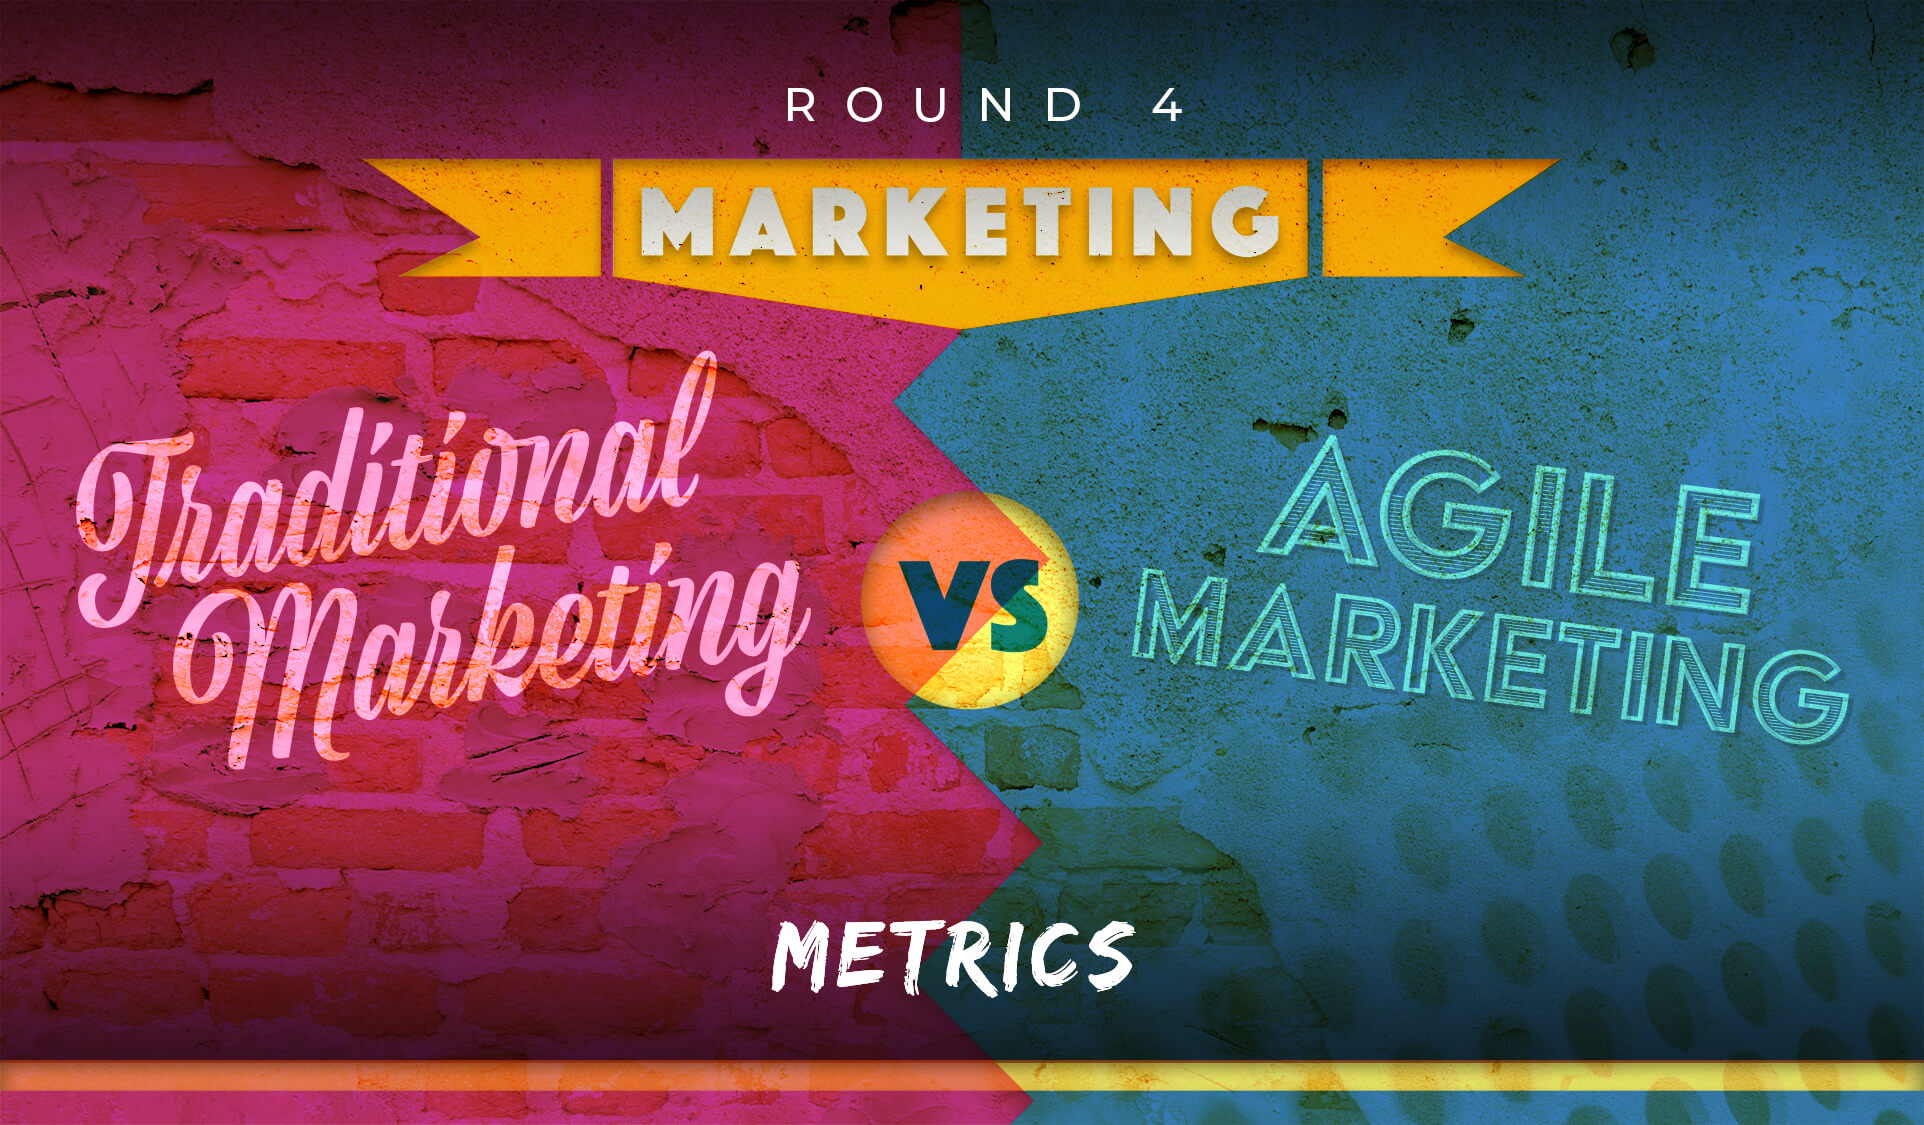 Traditional Marketing vs Agile Marketing : Round 4 - Metrics